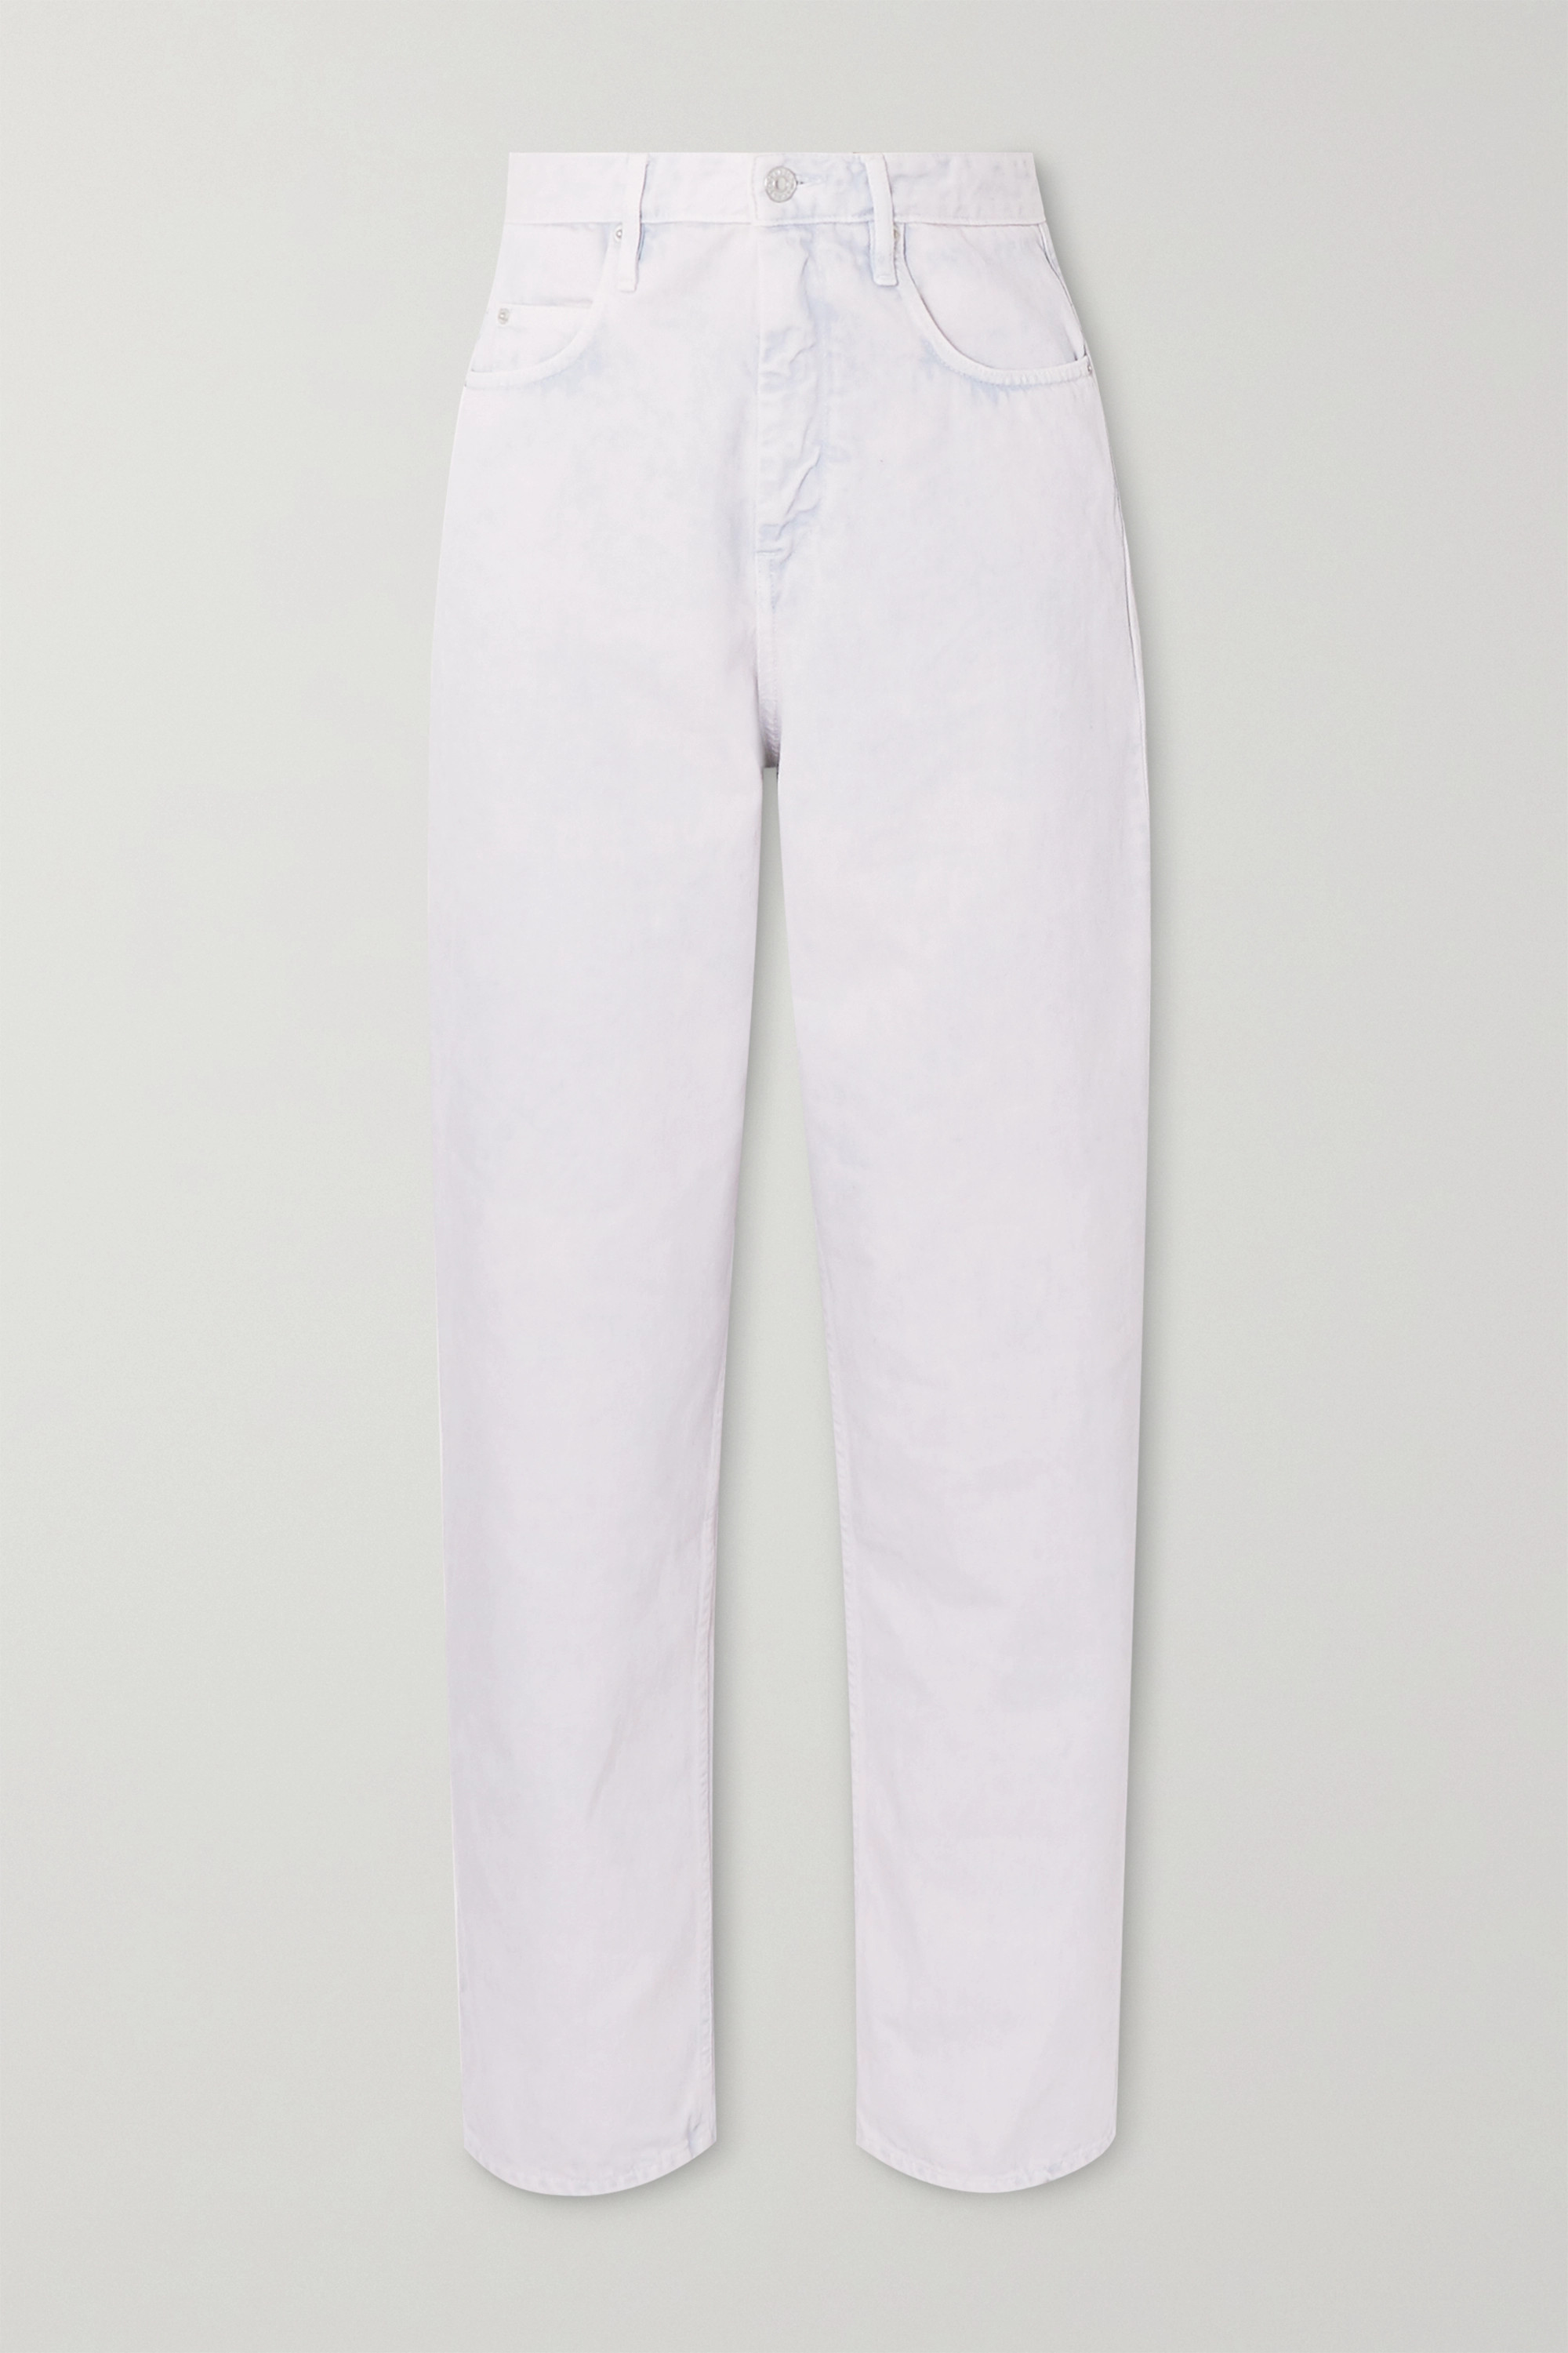 Isabel Marant Étoile Corsy high-rise tapered jeans